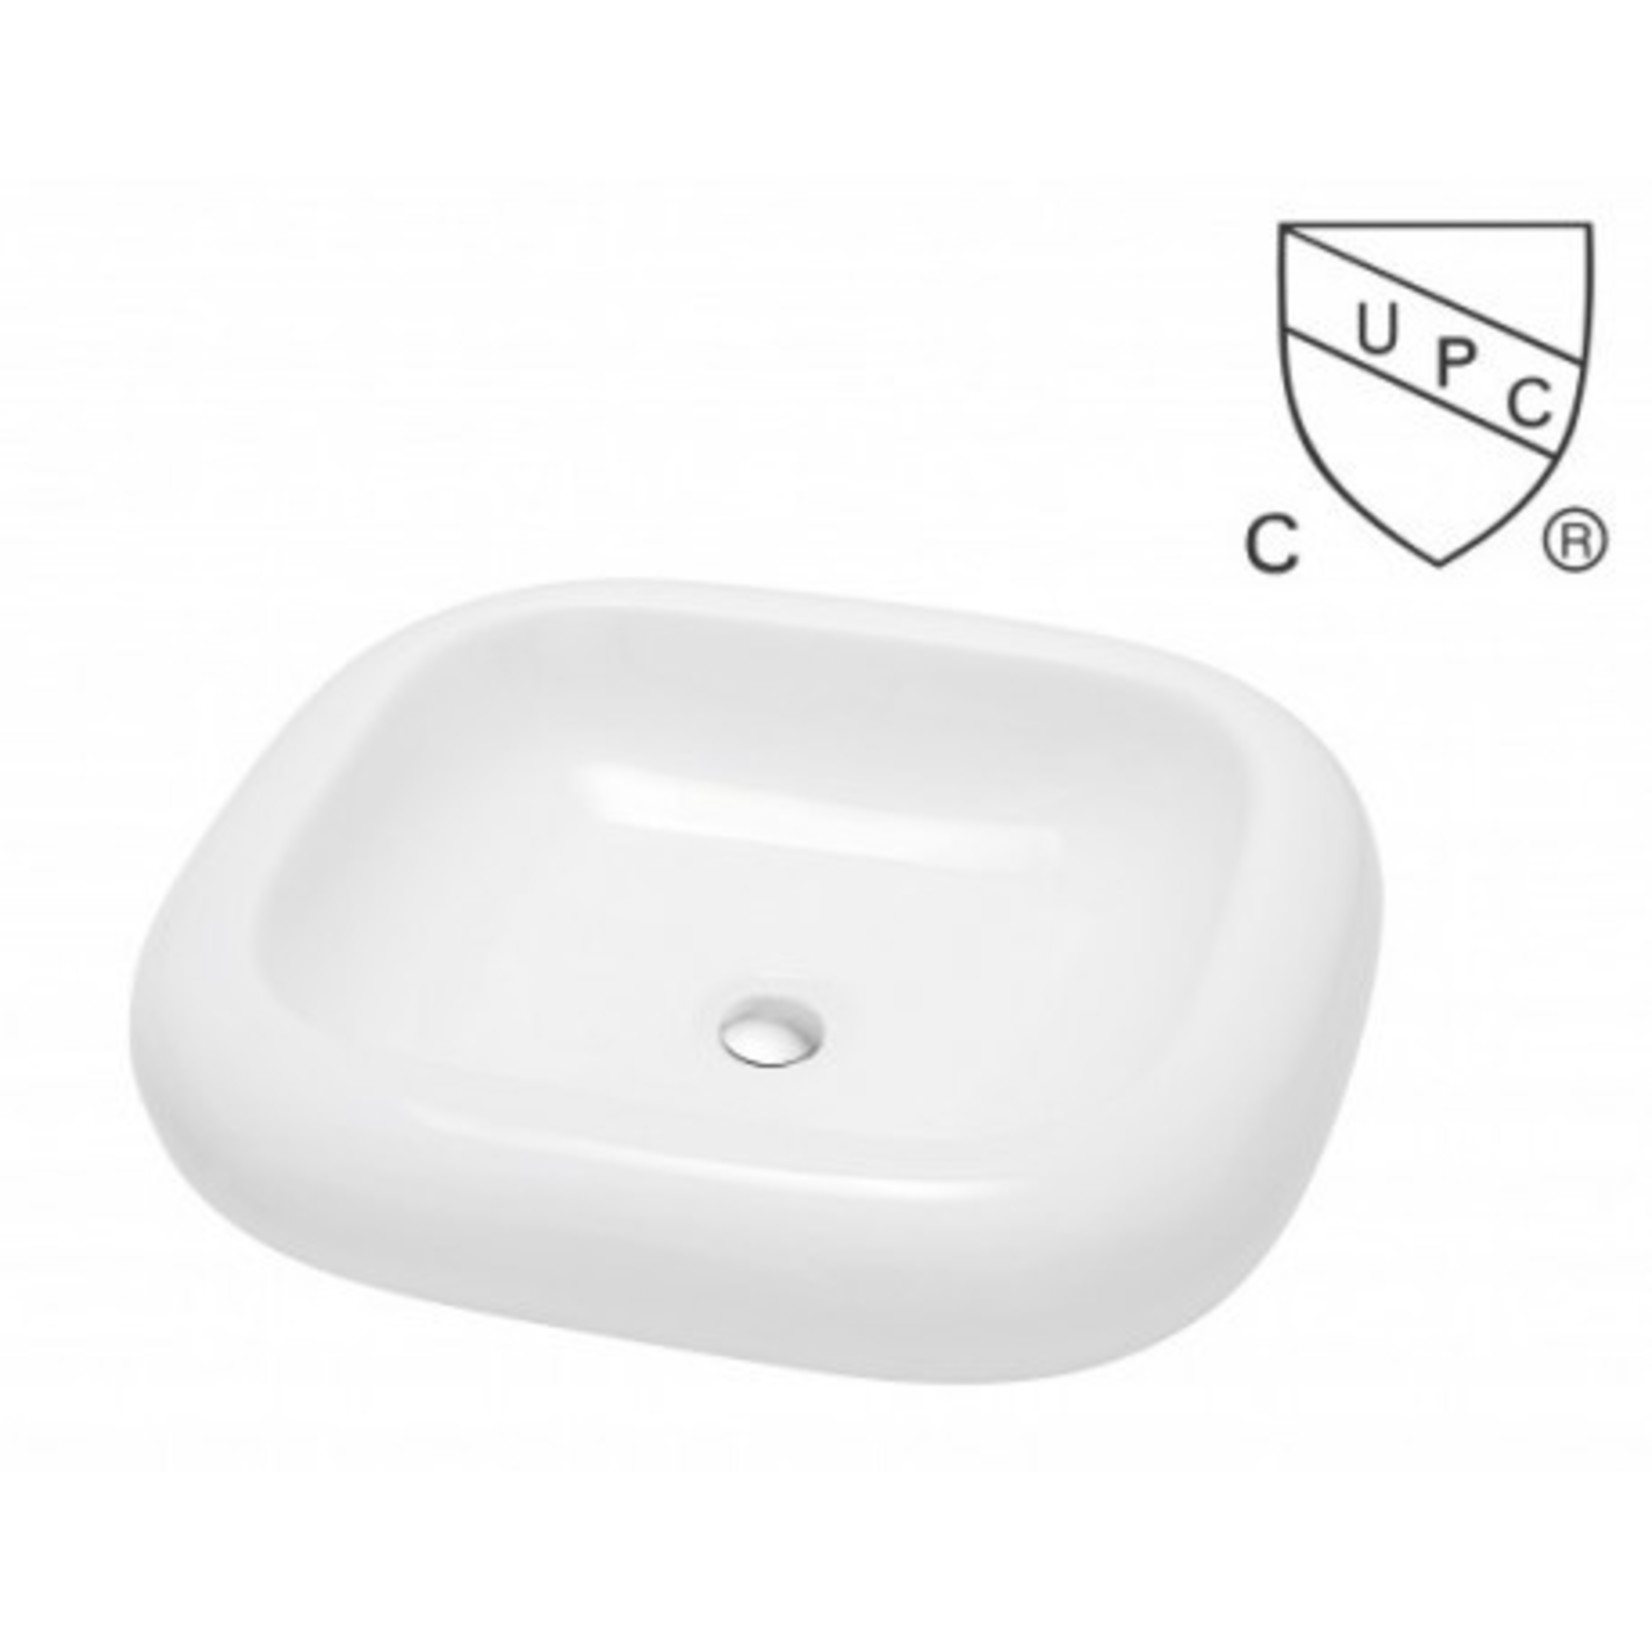 Washbasin Vessel - Countertop mounting s-800